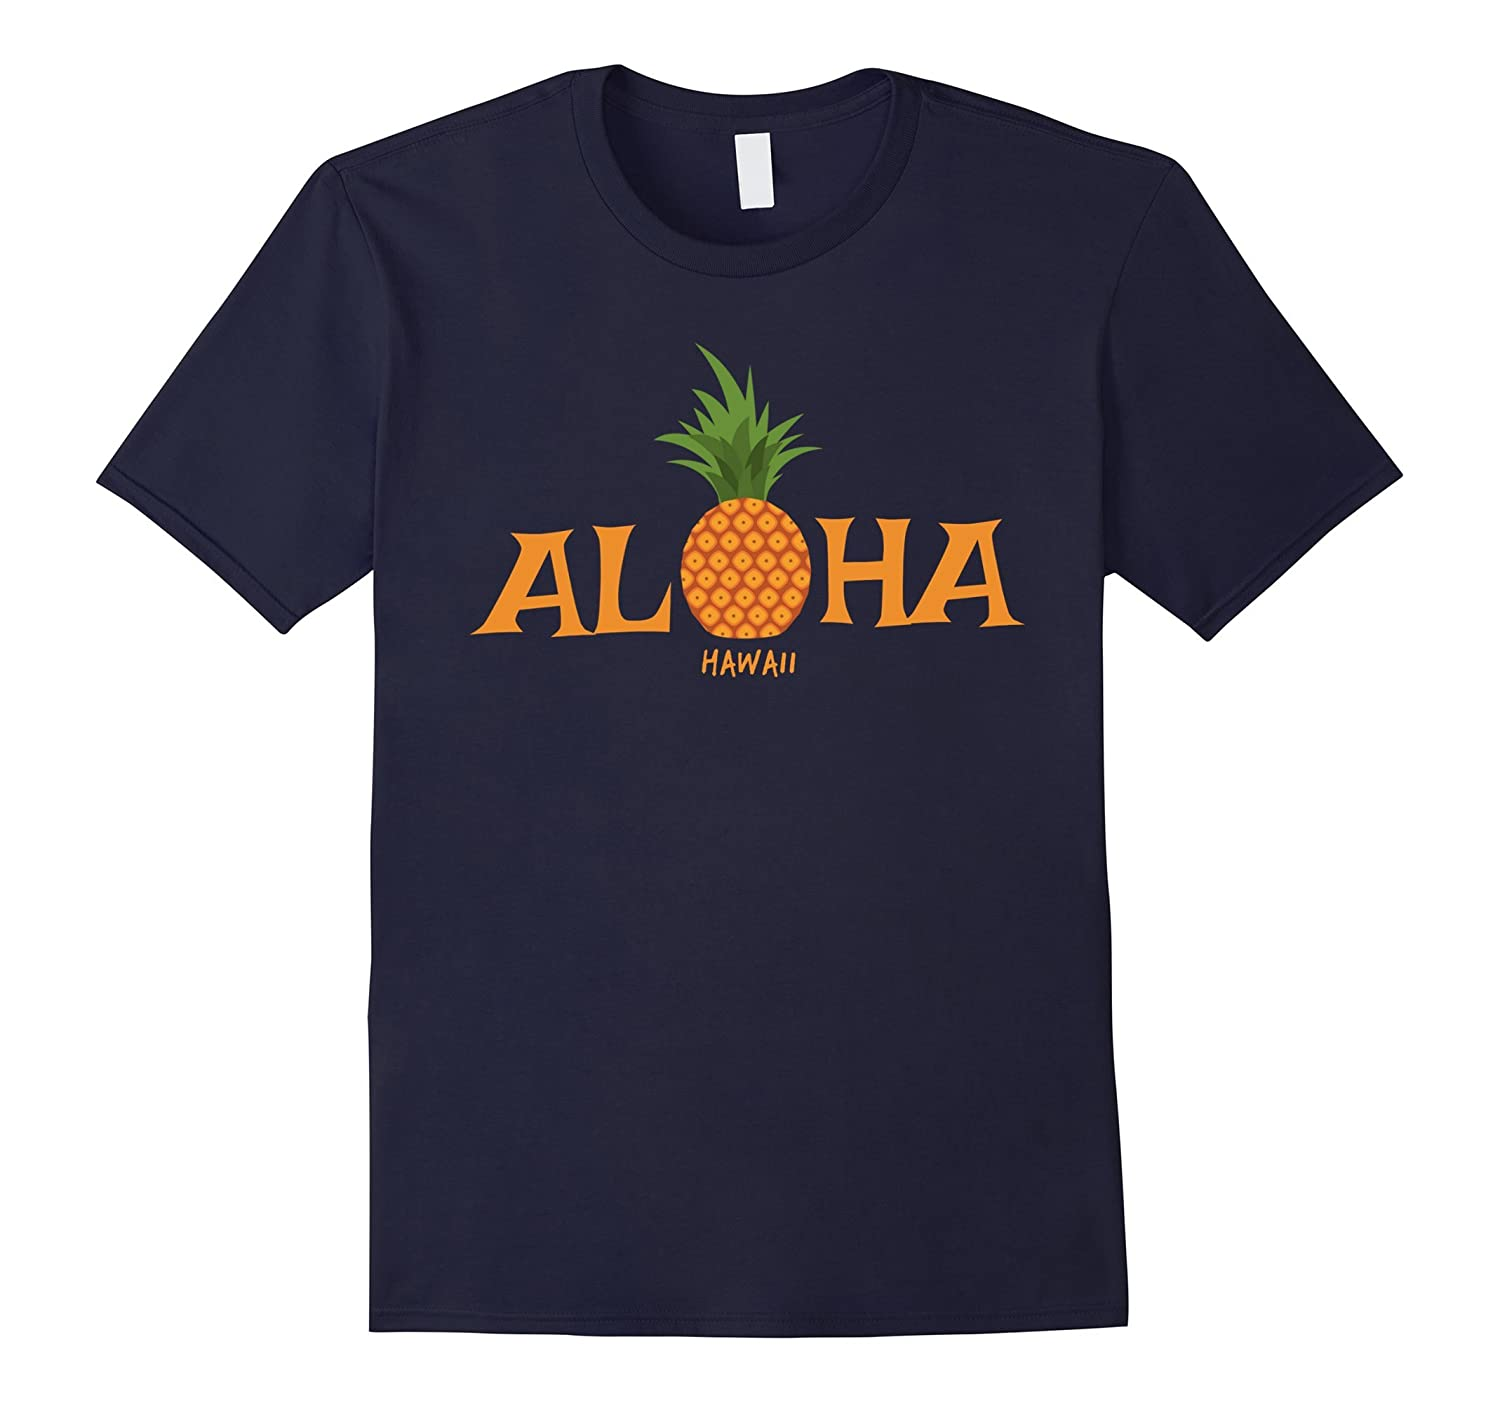 Hawaii Aloha Pineapple Hawaiian Islands Souvenir T-shirt-T-Shirt